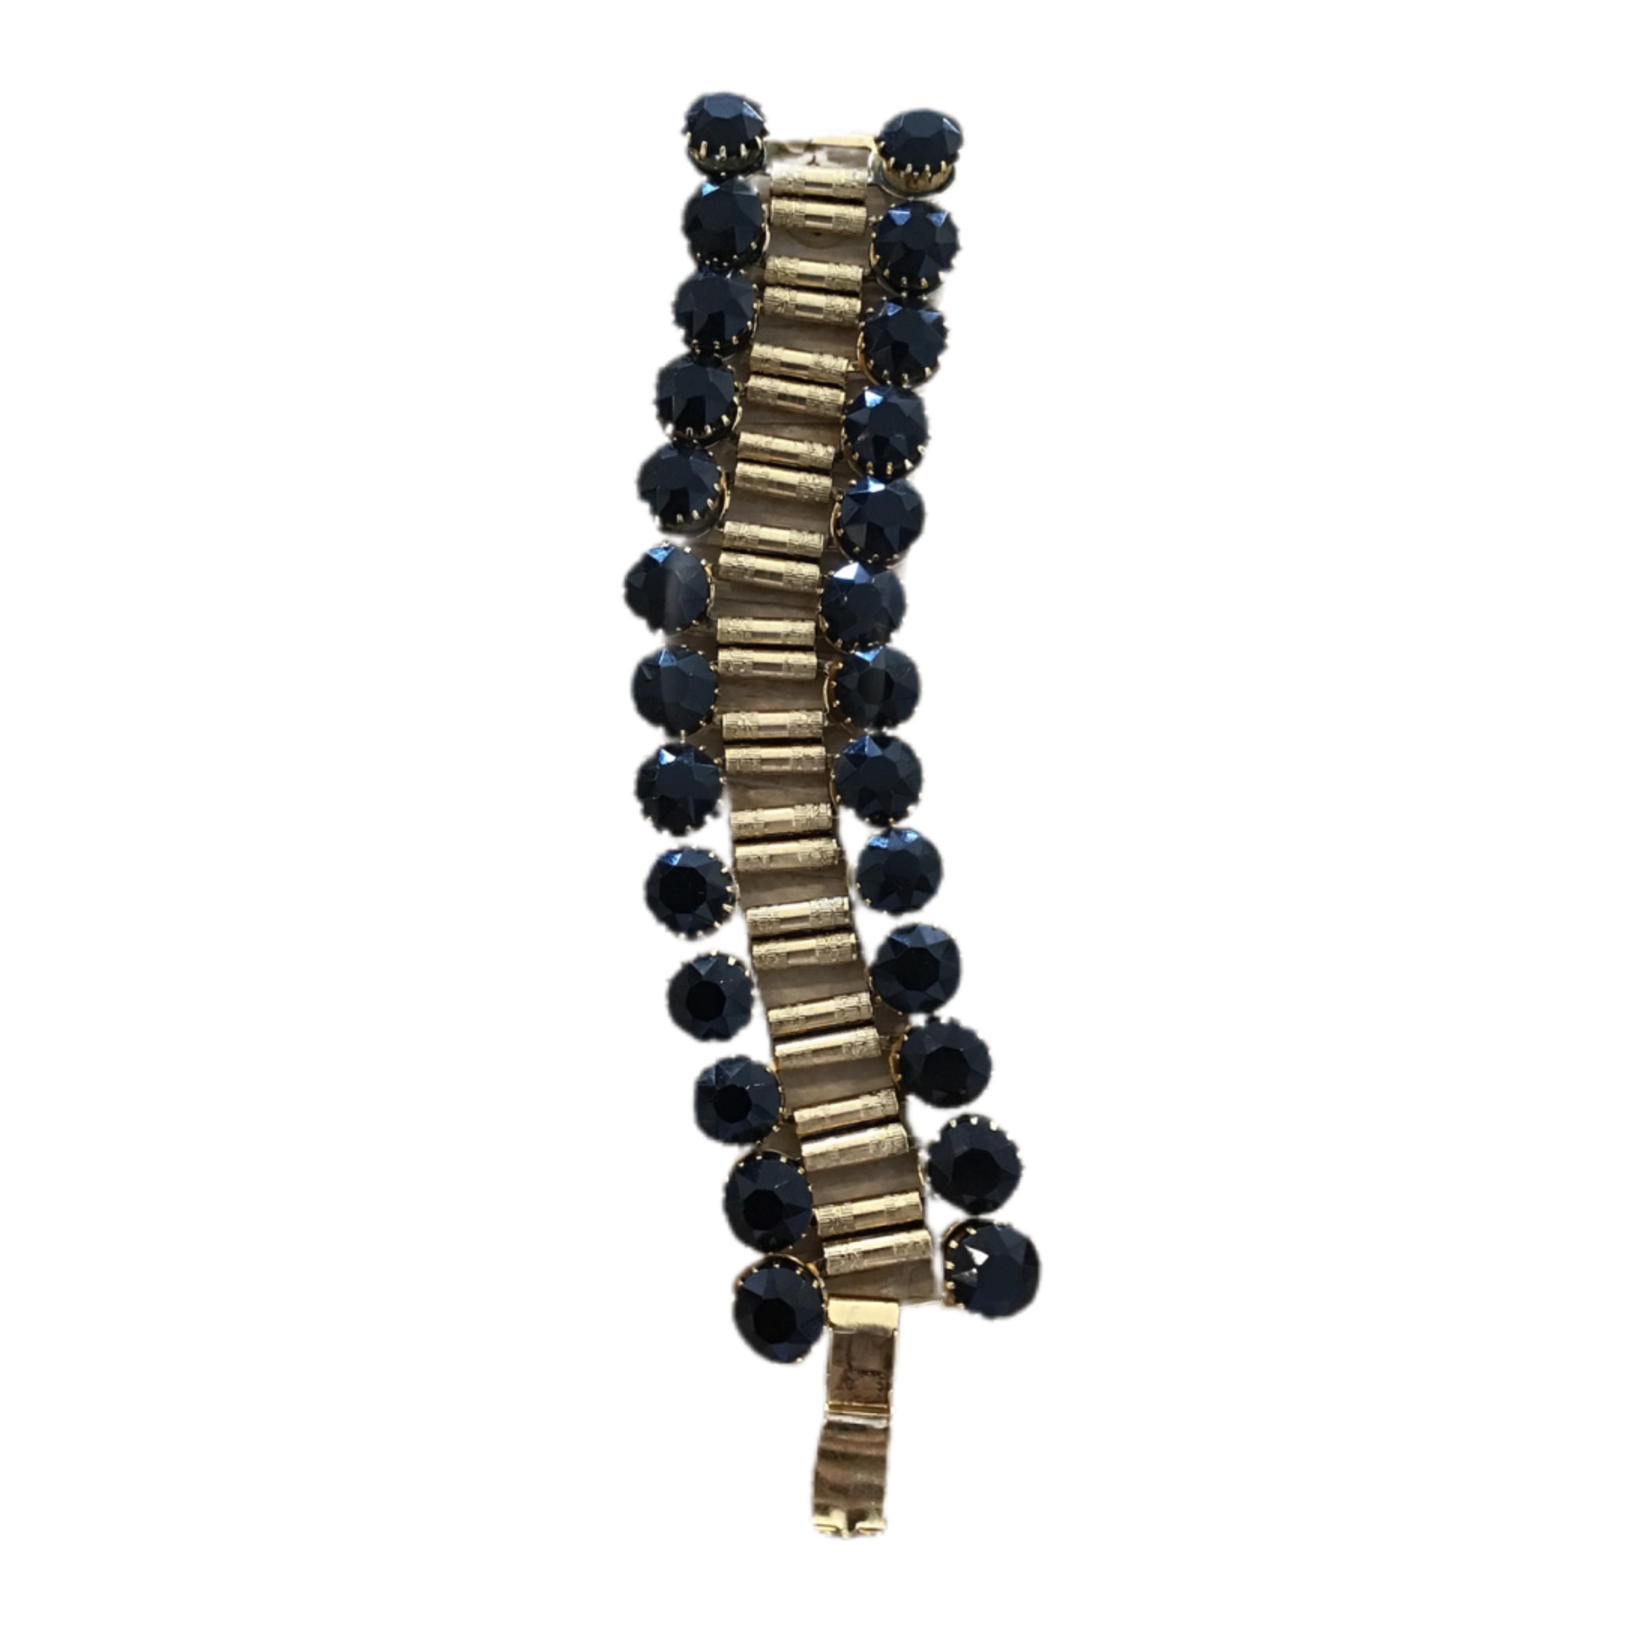 Nicole Romano Onyx Faceted Stone Framed Band Chain Bracelet